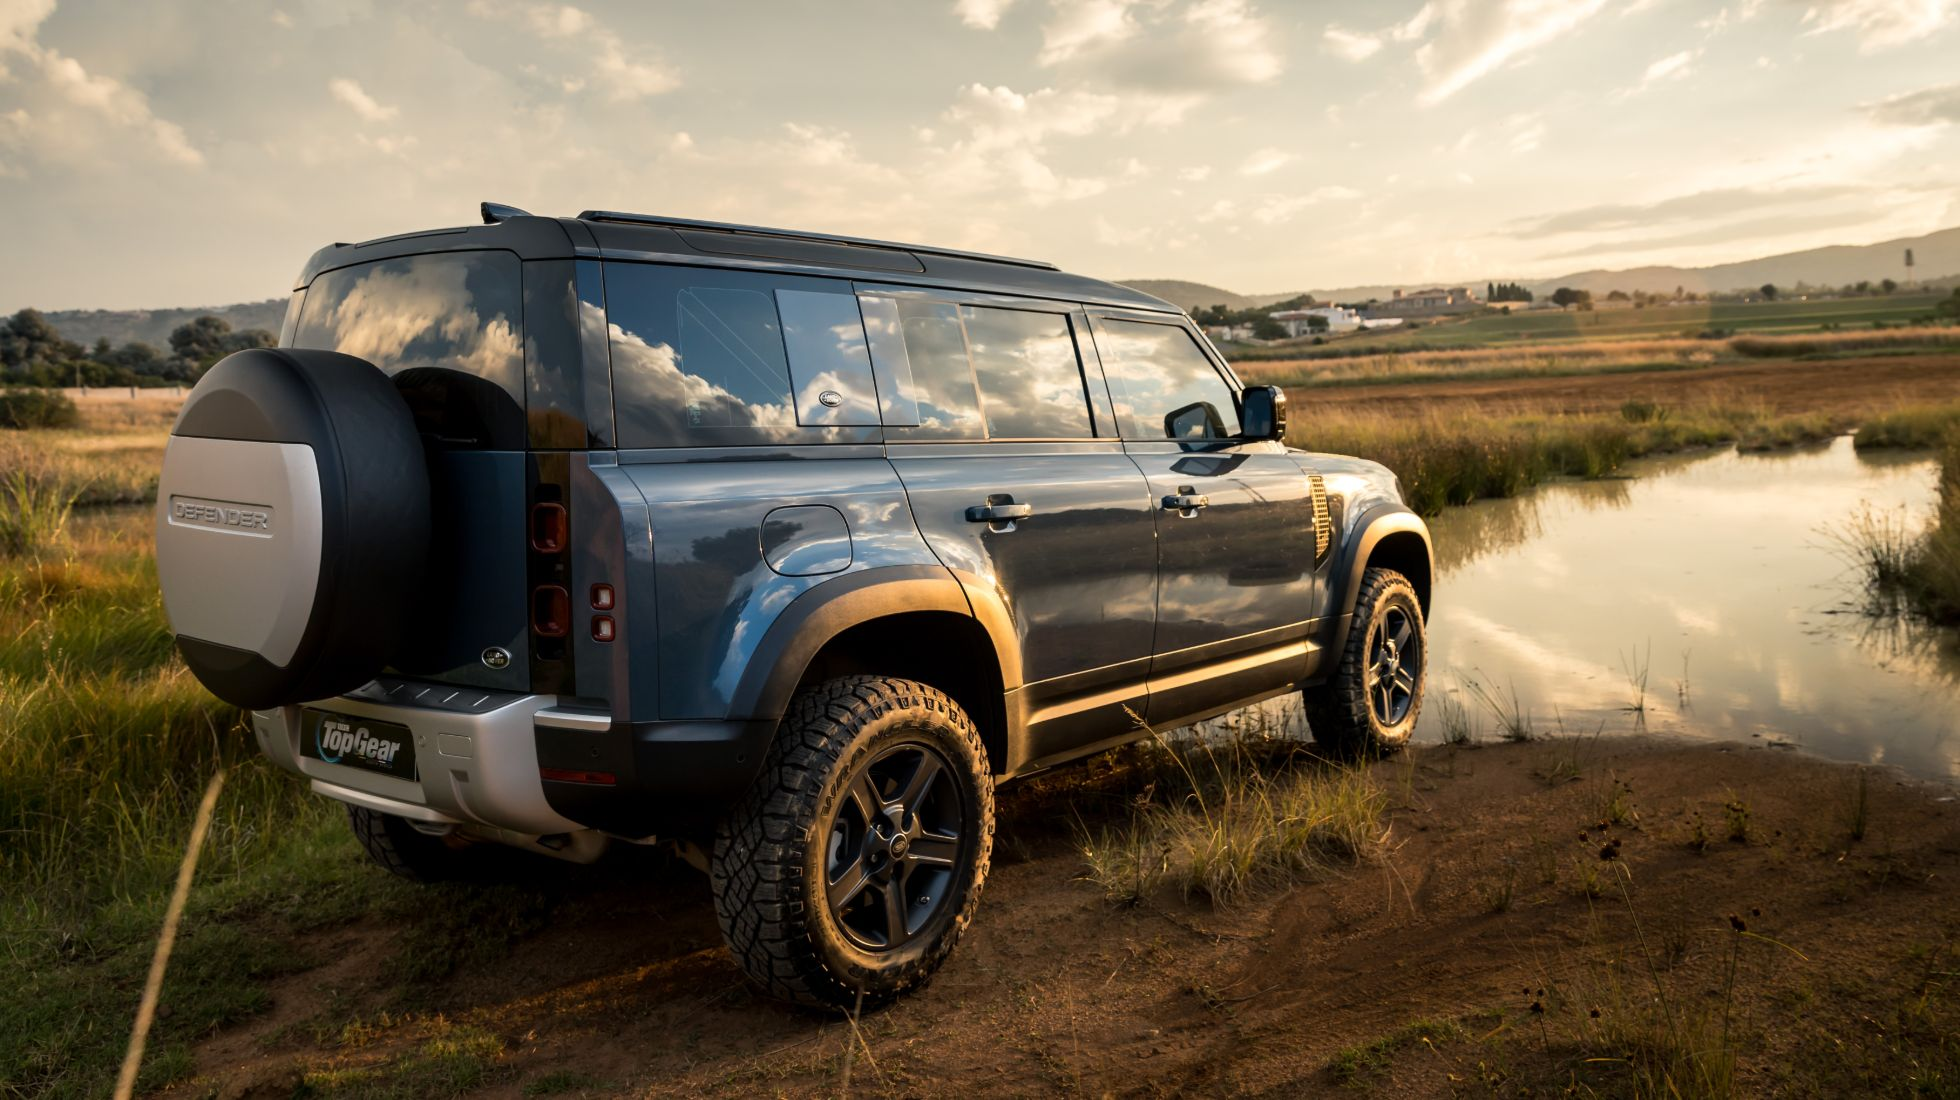 Easy Over - We review the game-changing new Defender 110.